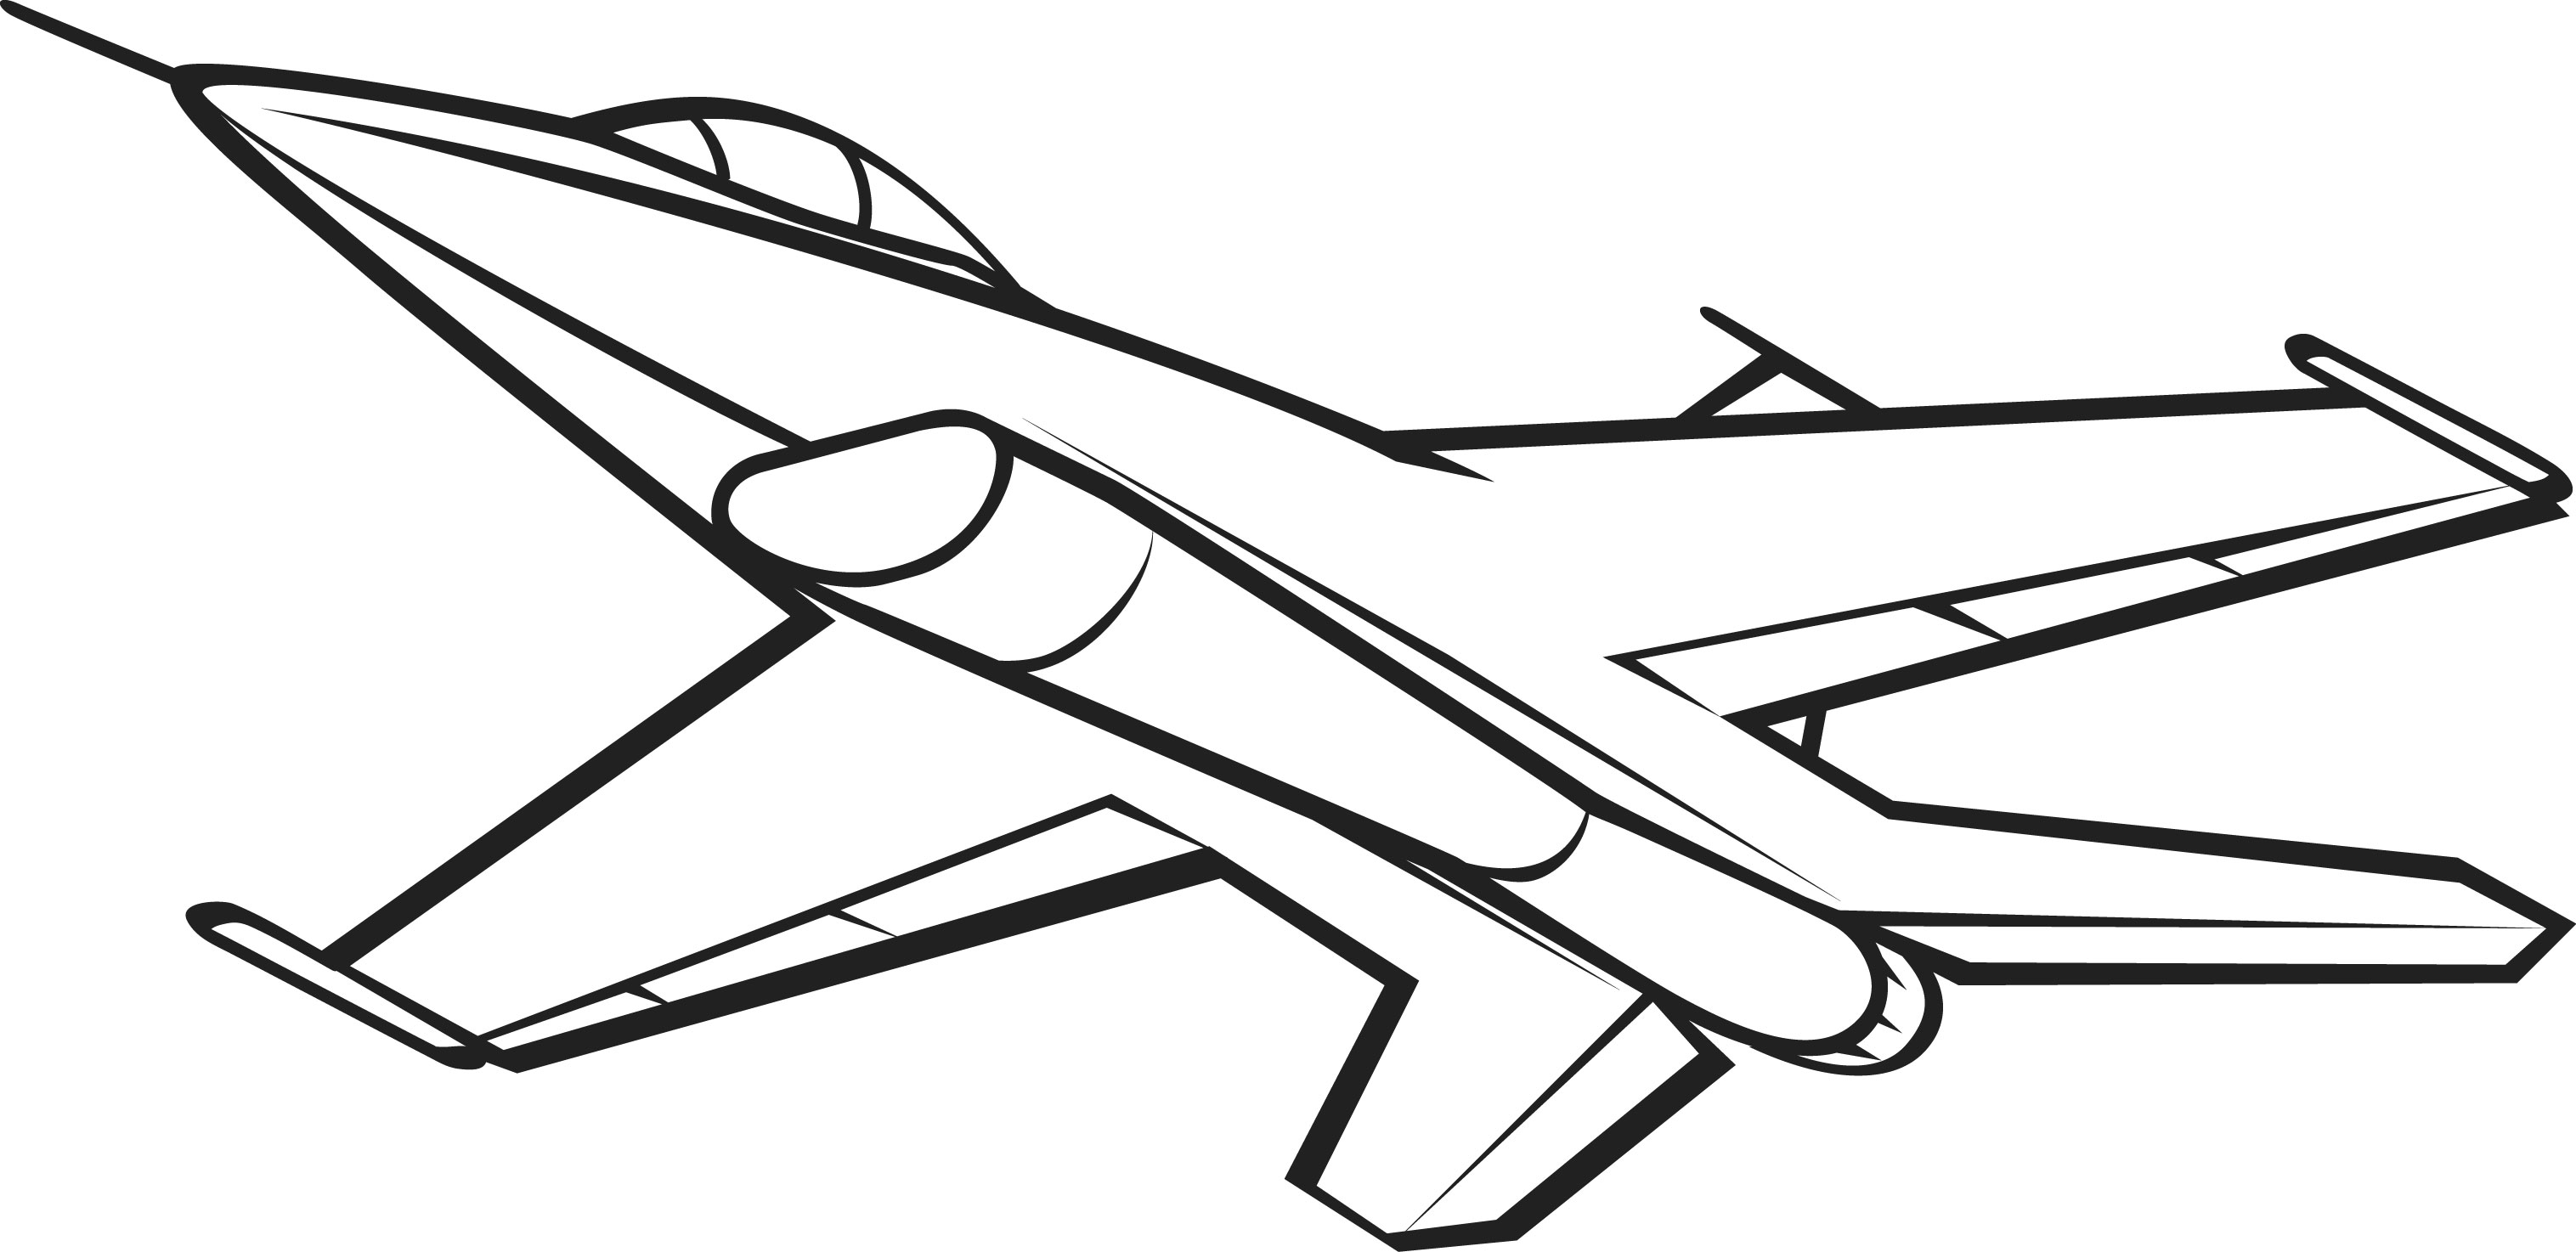 Line Art Jet : Jet black and white clipart suggest